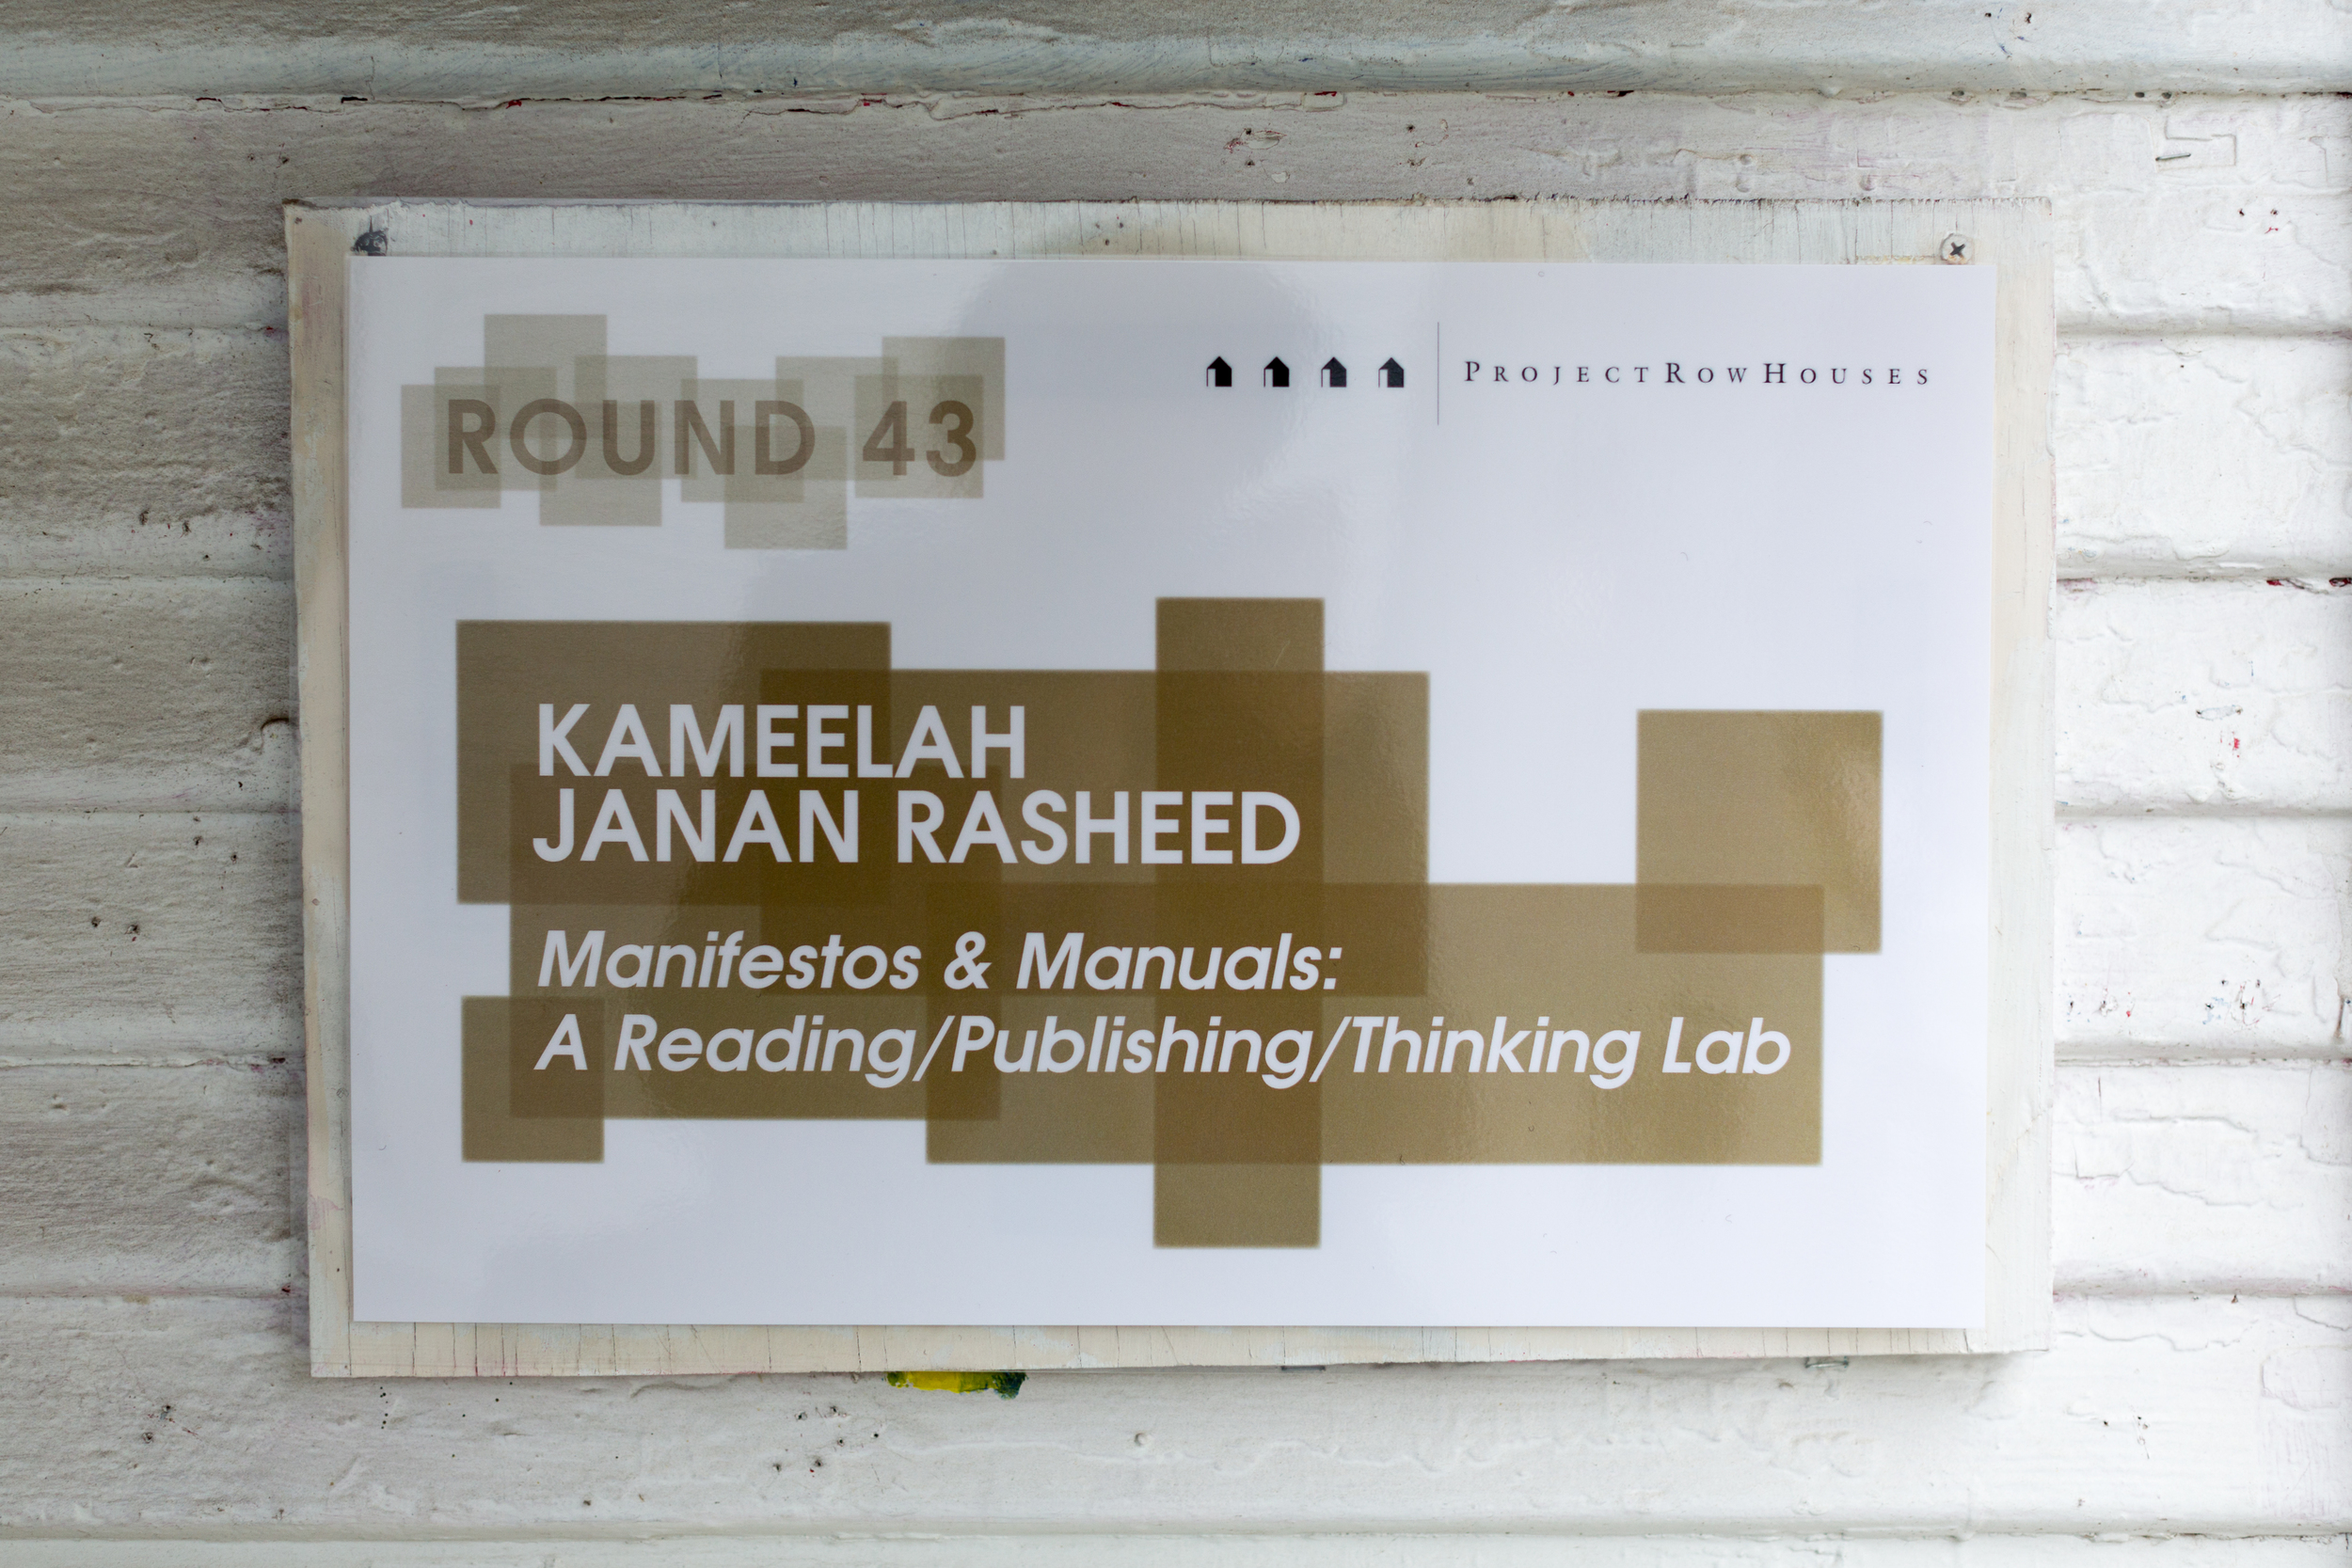 Manifestos & Manuals: A Reading/Publishing/Thinking Lab , Kameelah Janan Rasheed  2509 Holman St.